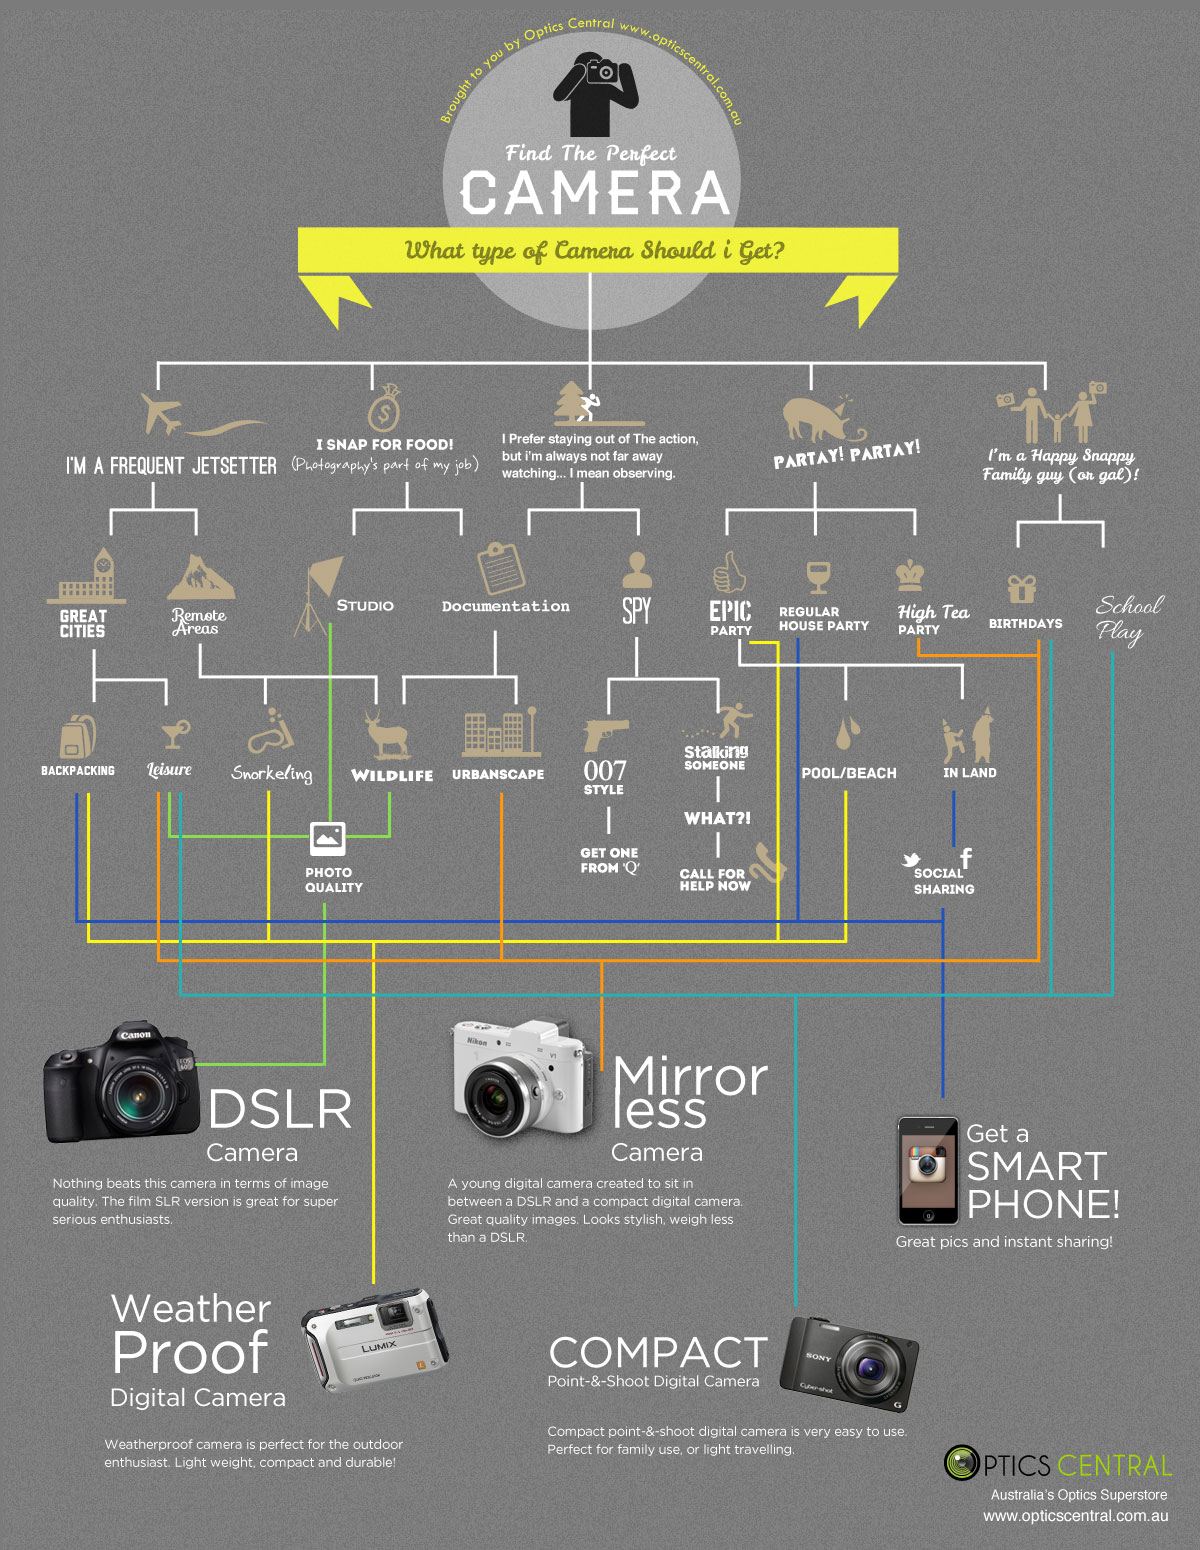 Camera Guide Will Help You Decide What Camera To Get [Infographic]